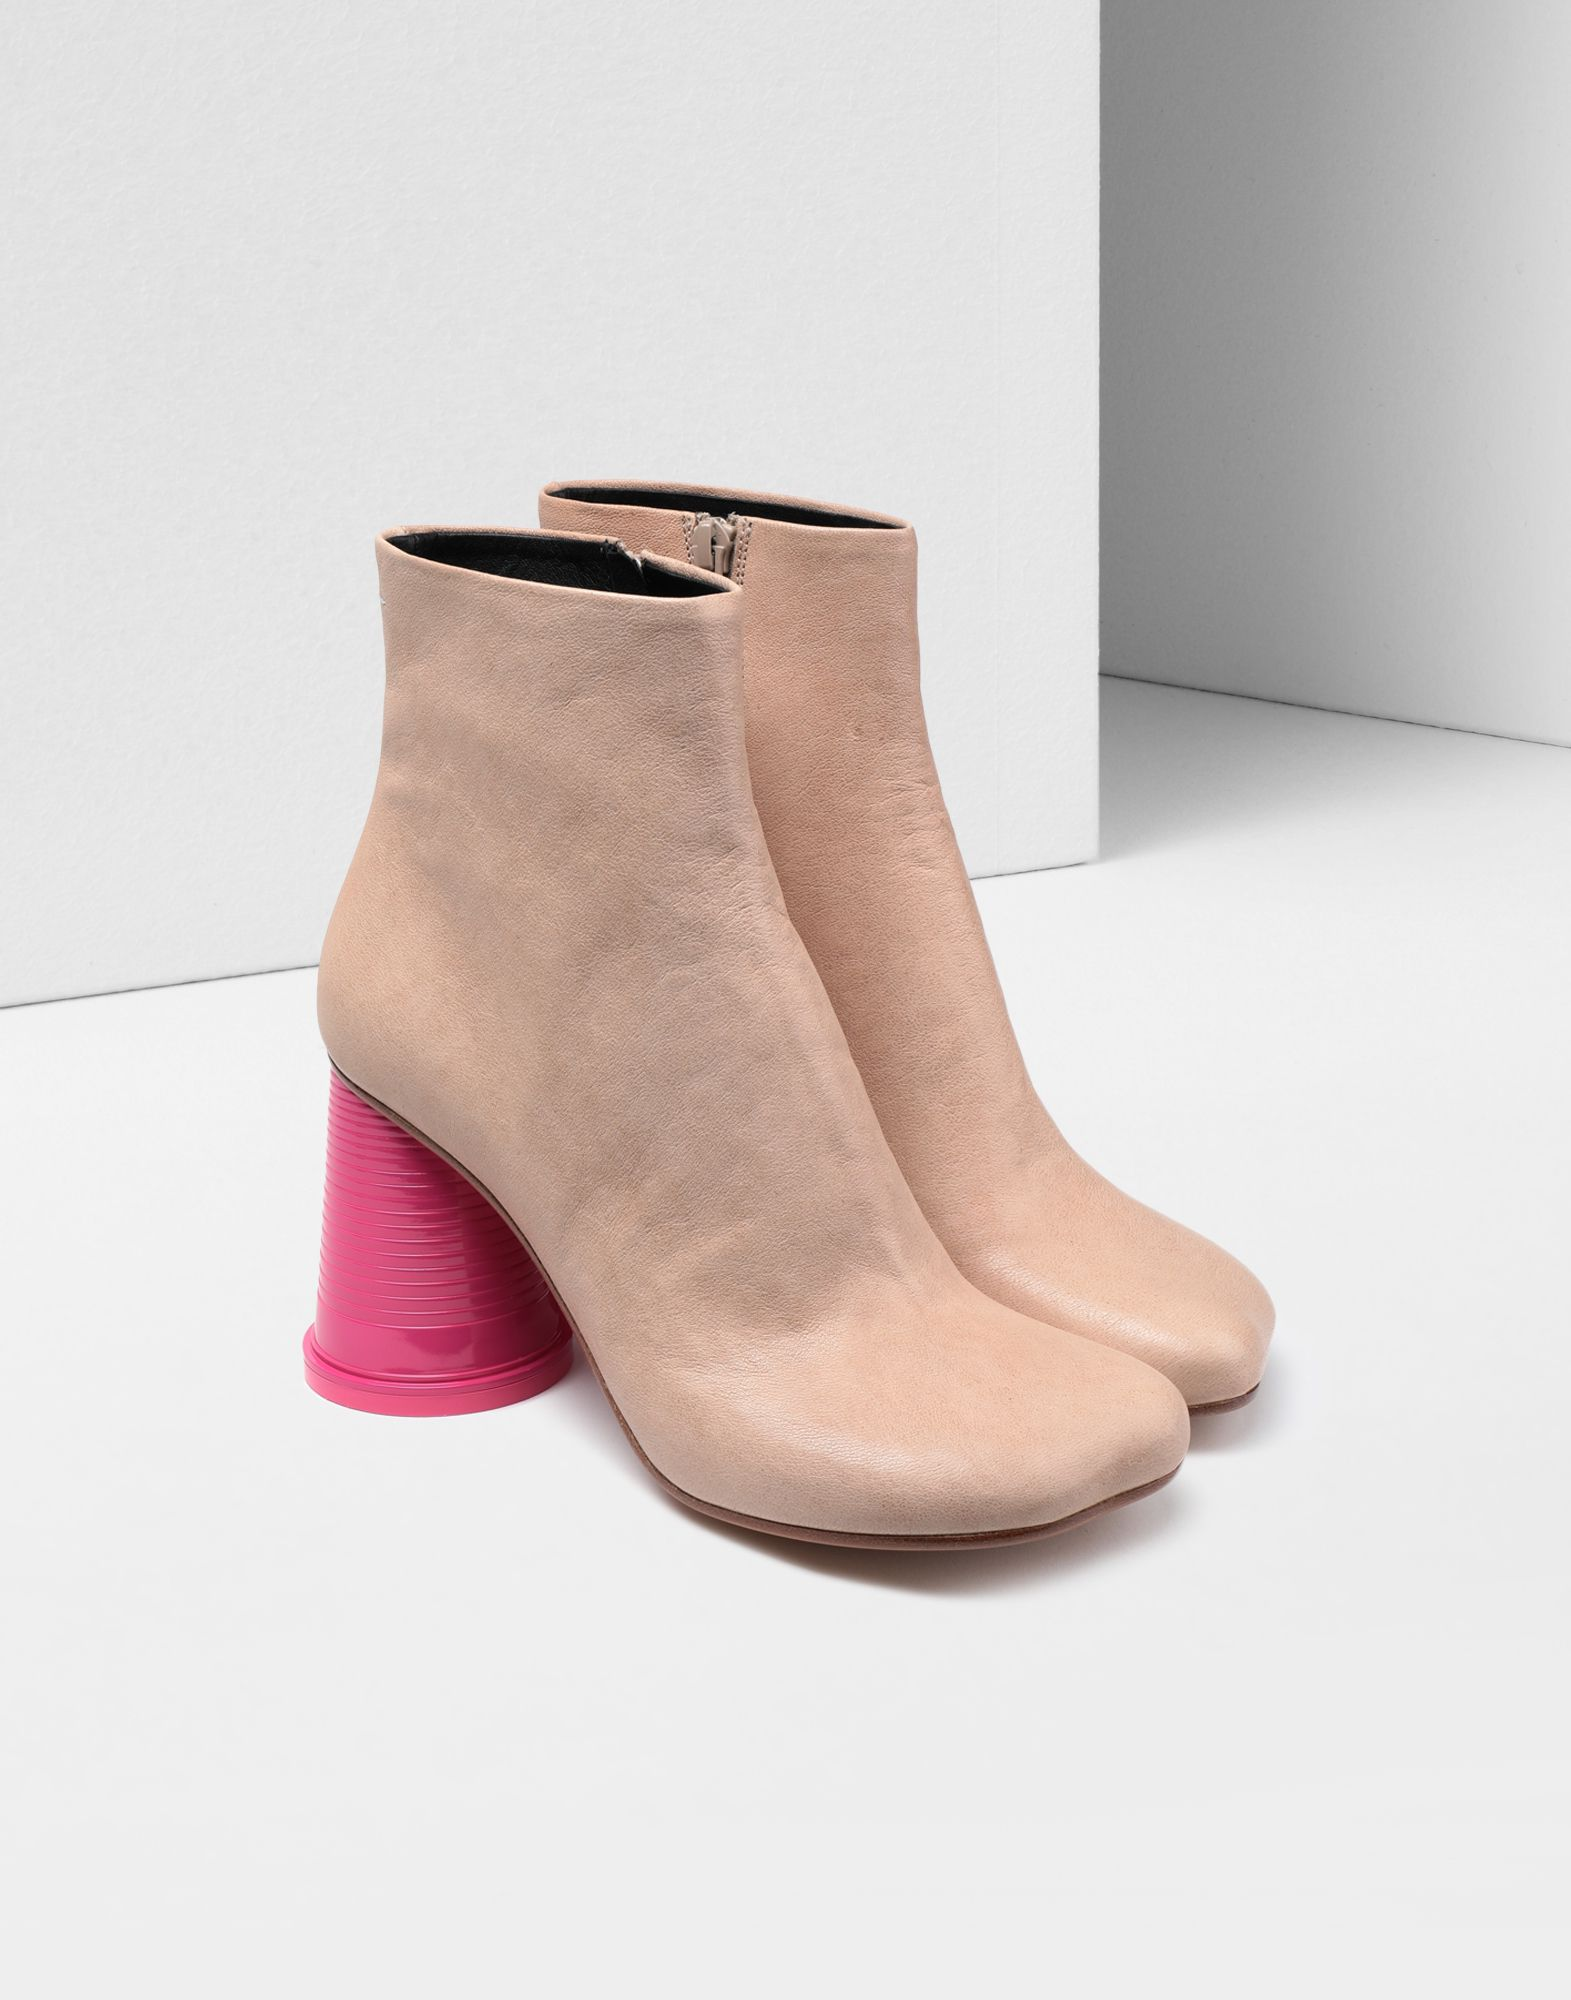 MM6 MAISON MARGIELA Ankle boots with cup heels Ankle boots Woman r